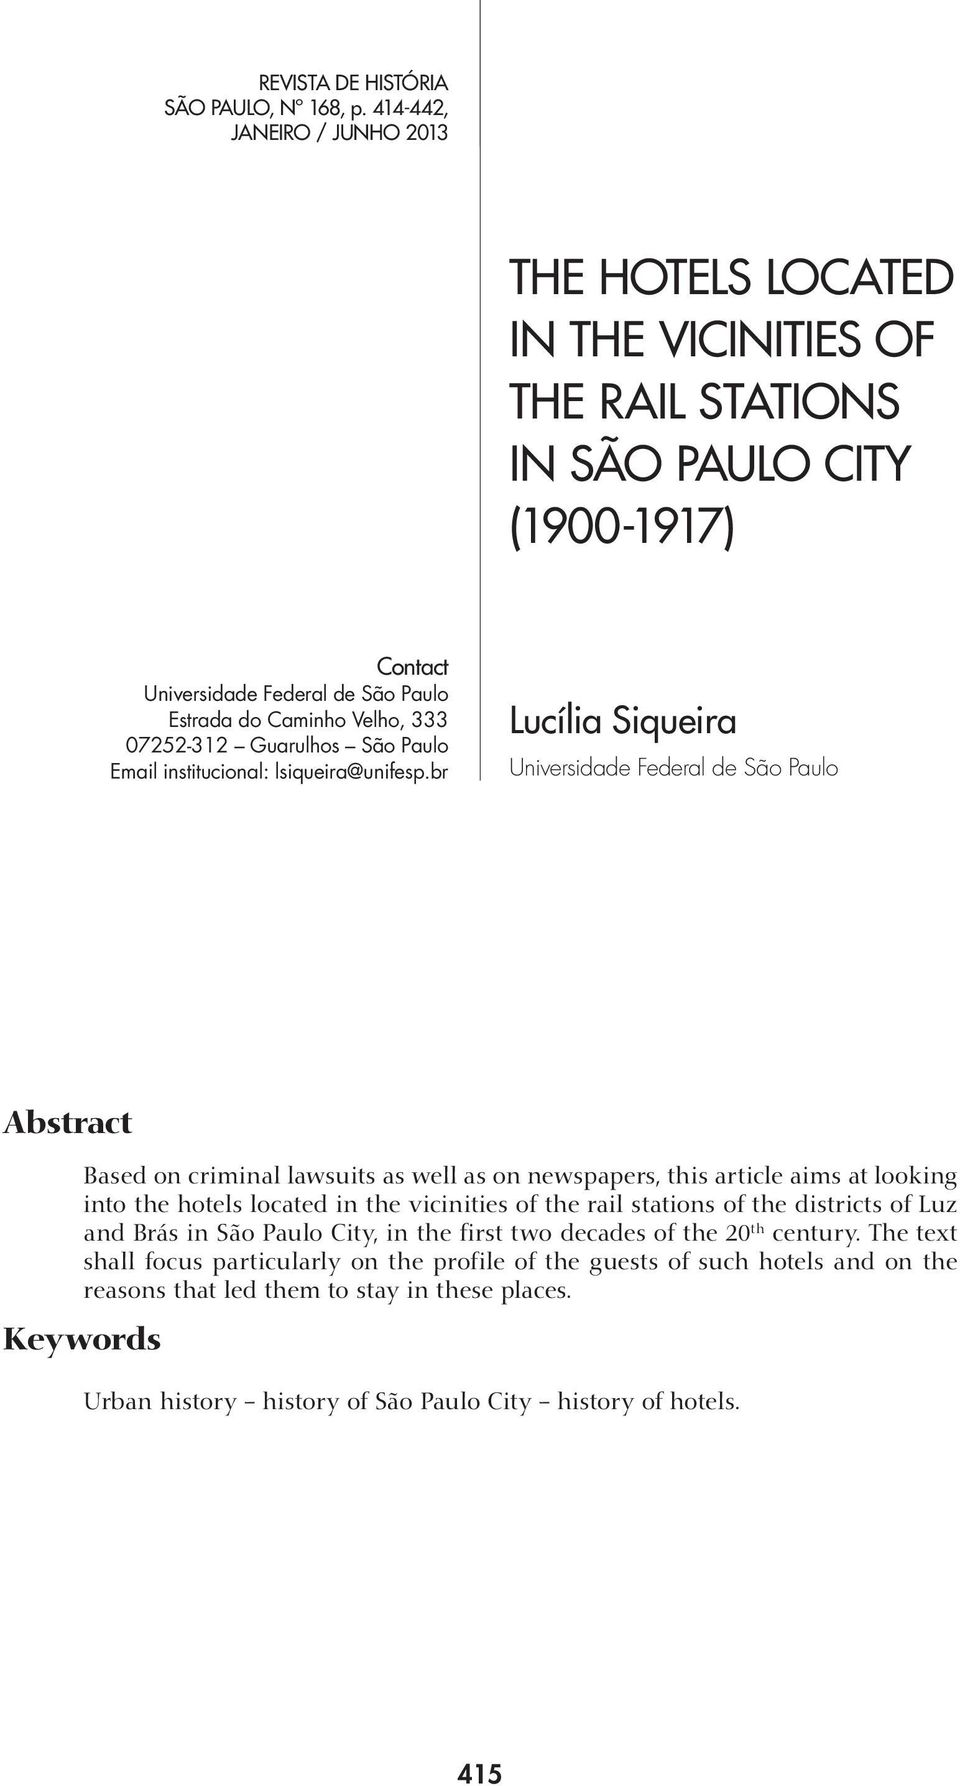 br Universidade Federal de São Paulo Abstract Based on criminal lawsuits as well as on newspapers, this article aims at looking into the hotels located in the vicinities of the